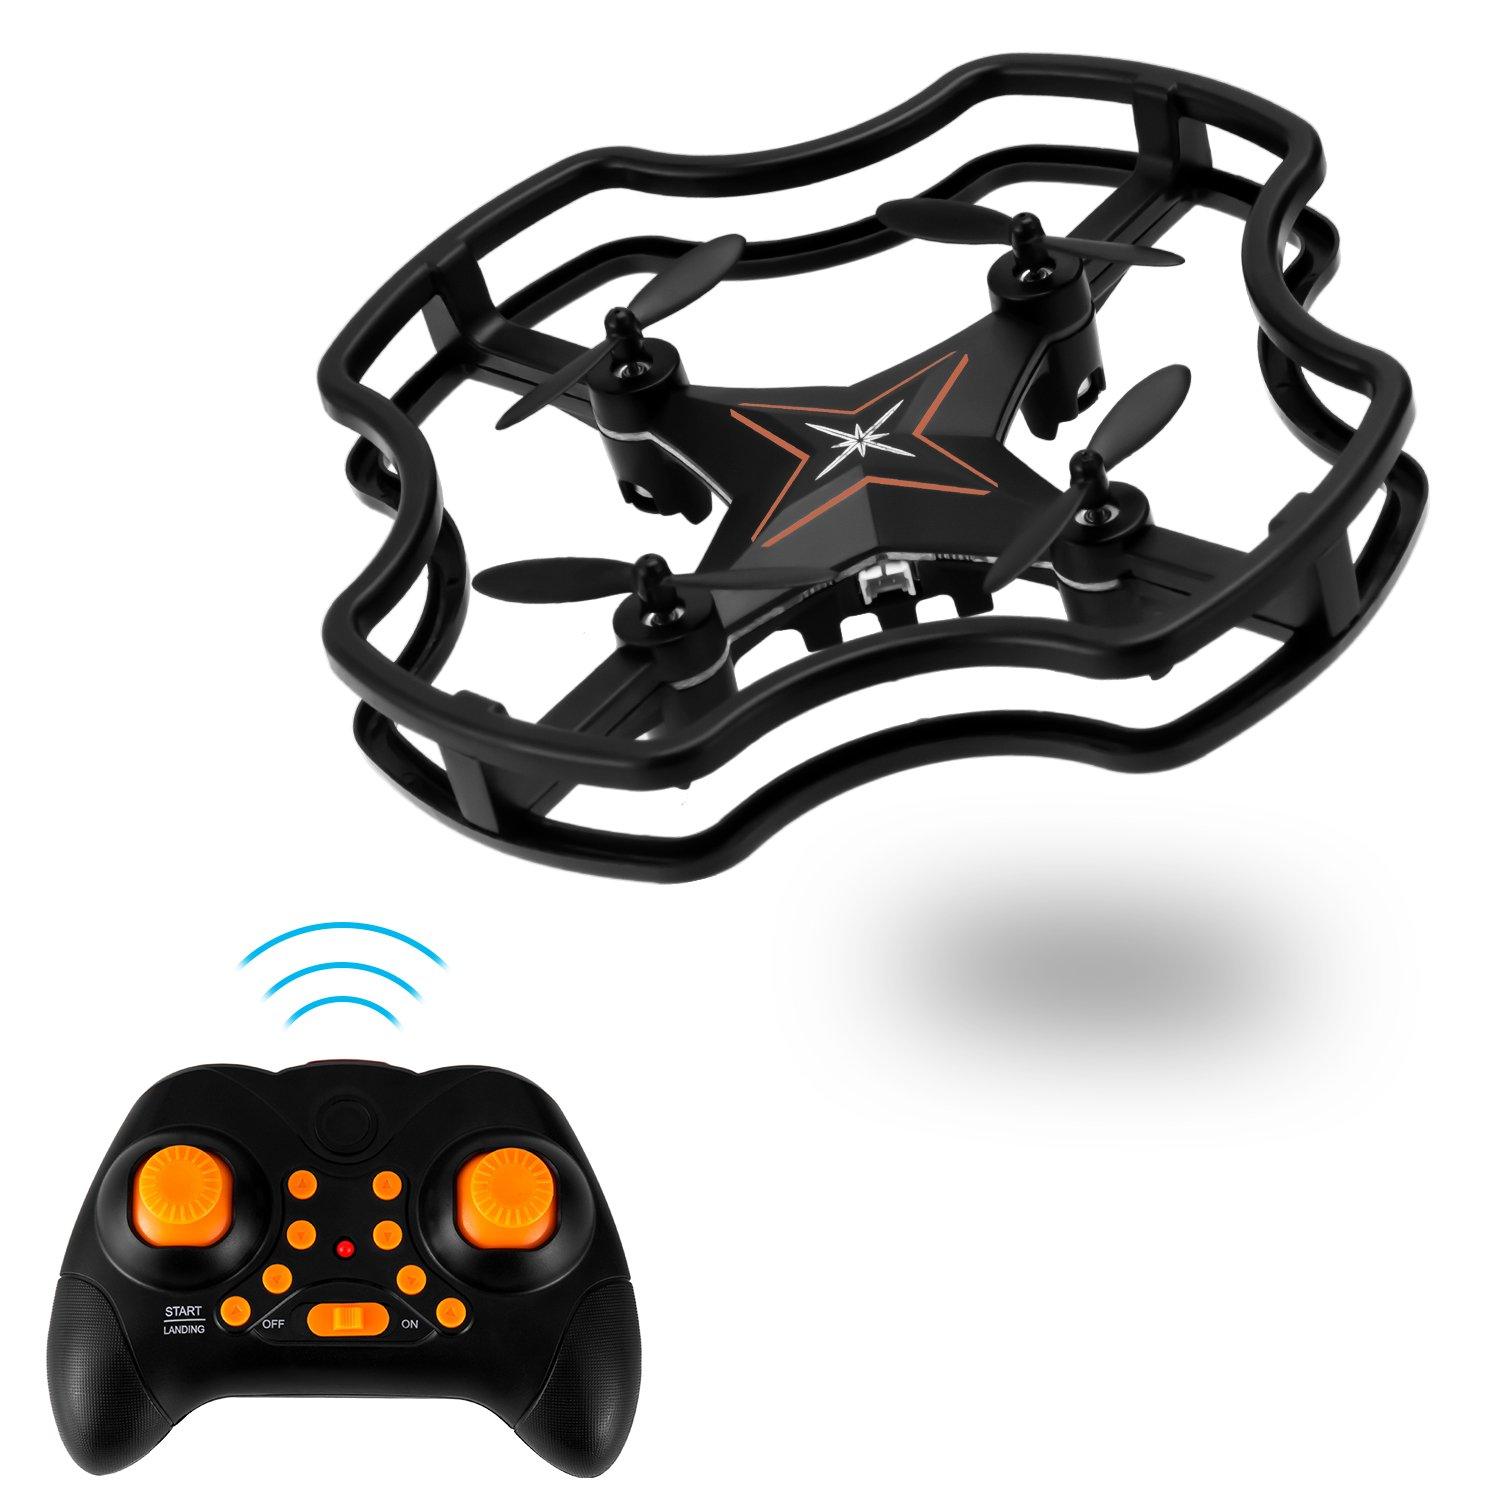 RC Mini Drone, Zomma F15 RC Quadcopter, Little Nano Quadcopter with 3D Flips, Headless Mode Remote Control Best Drone for Beginners & Kids - Black